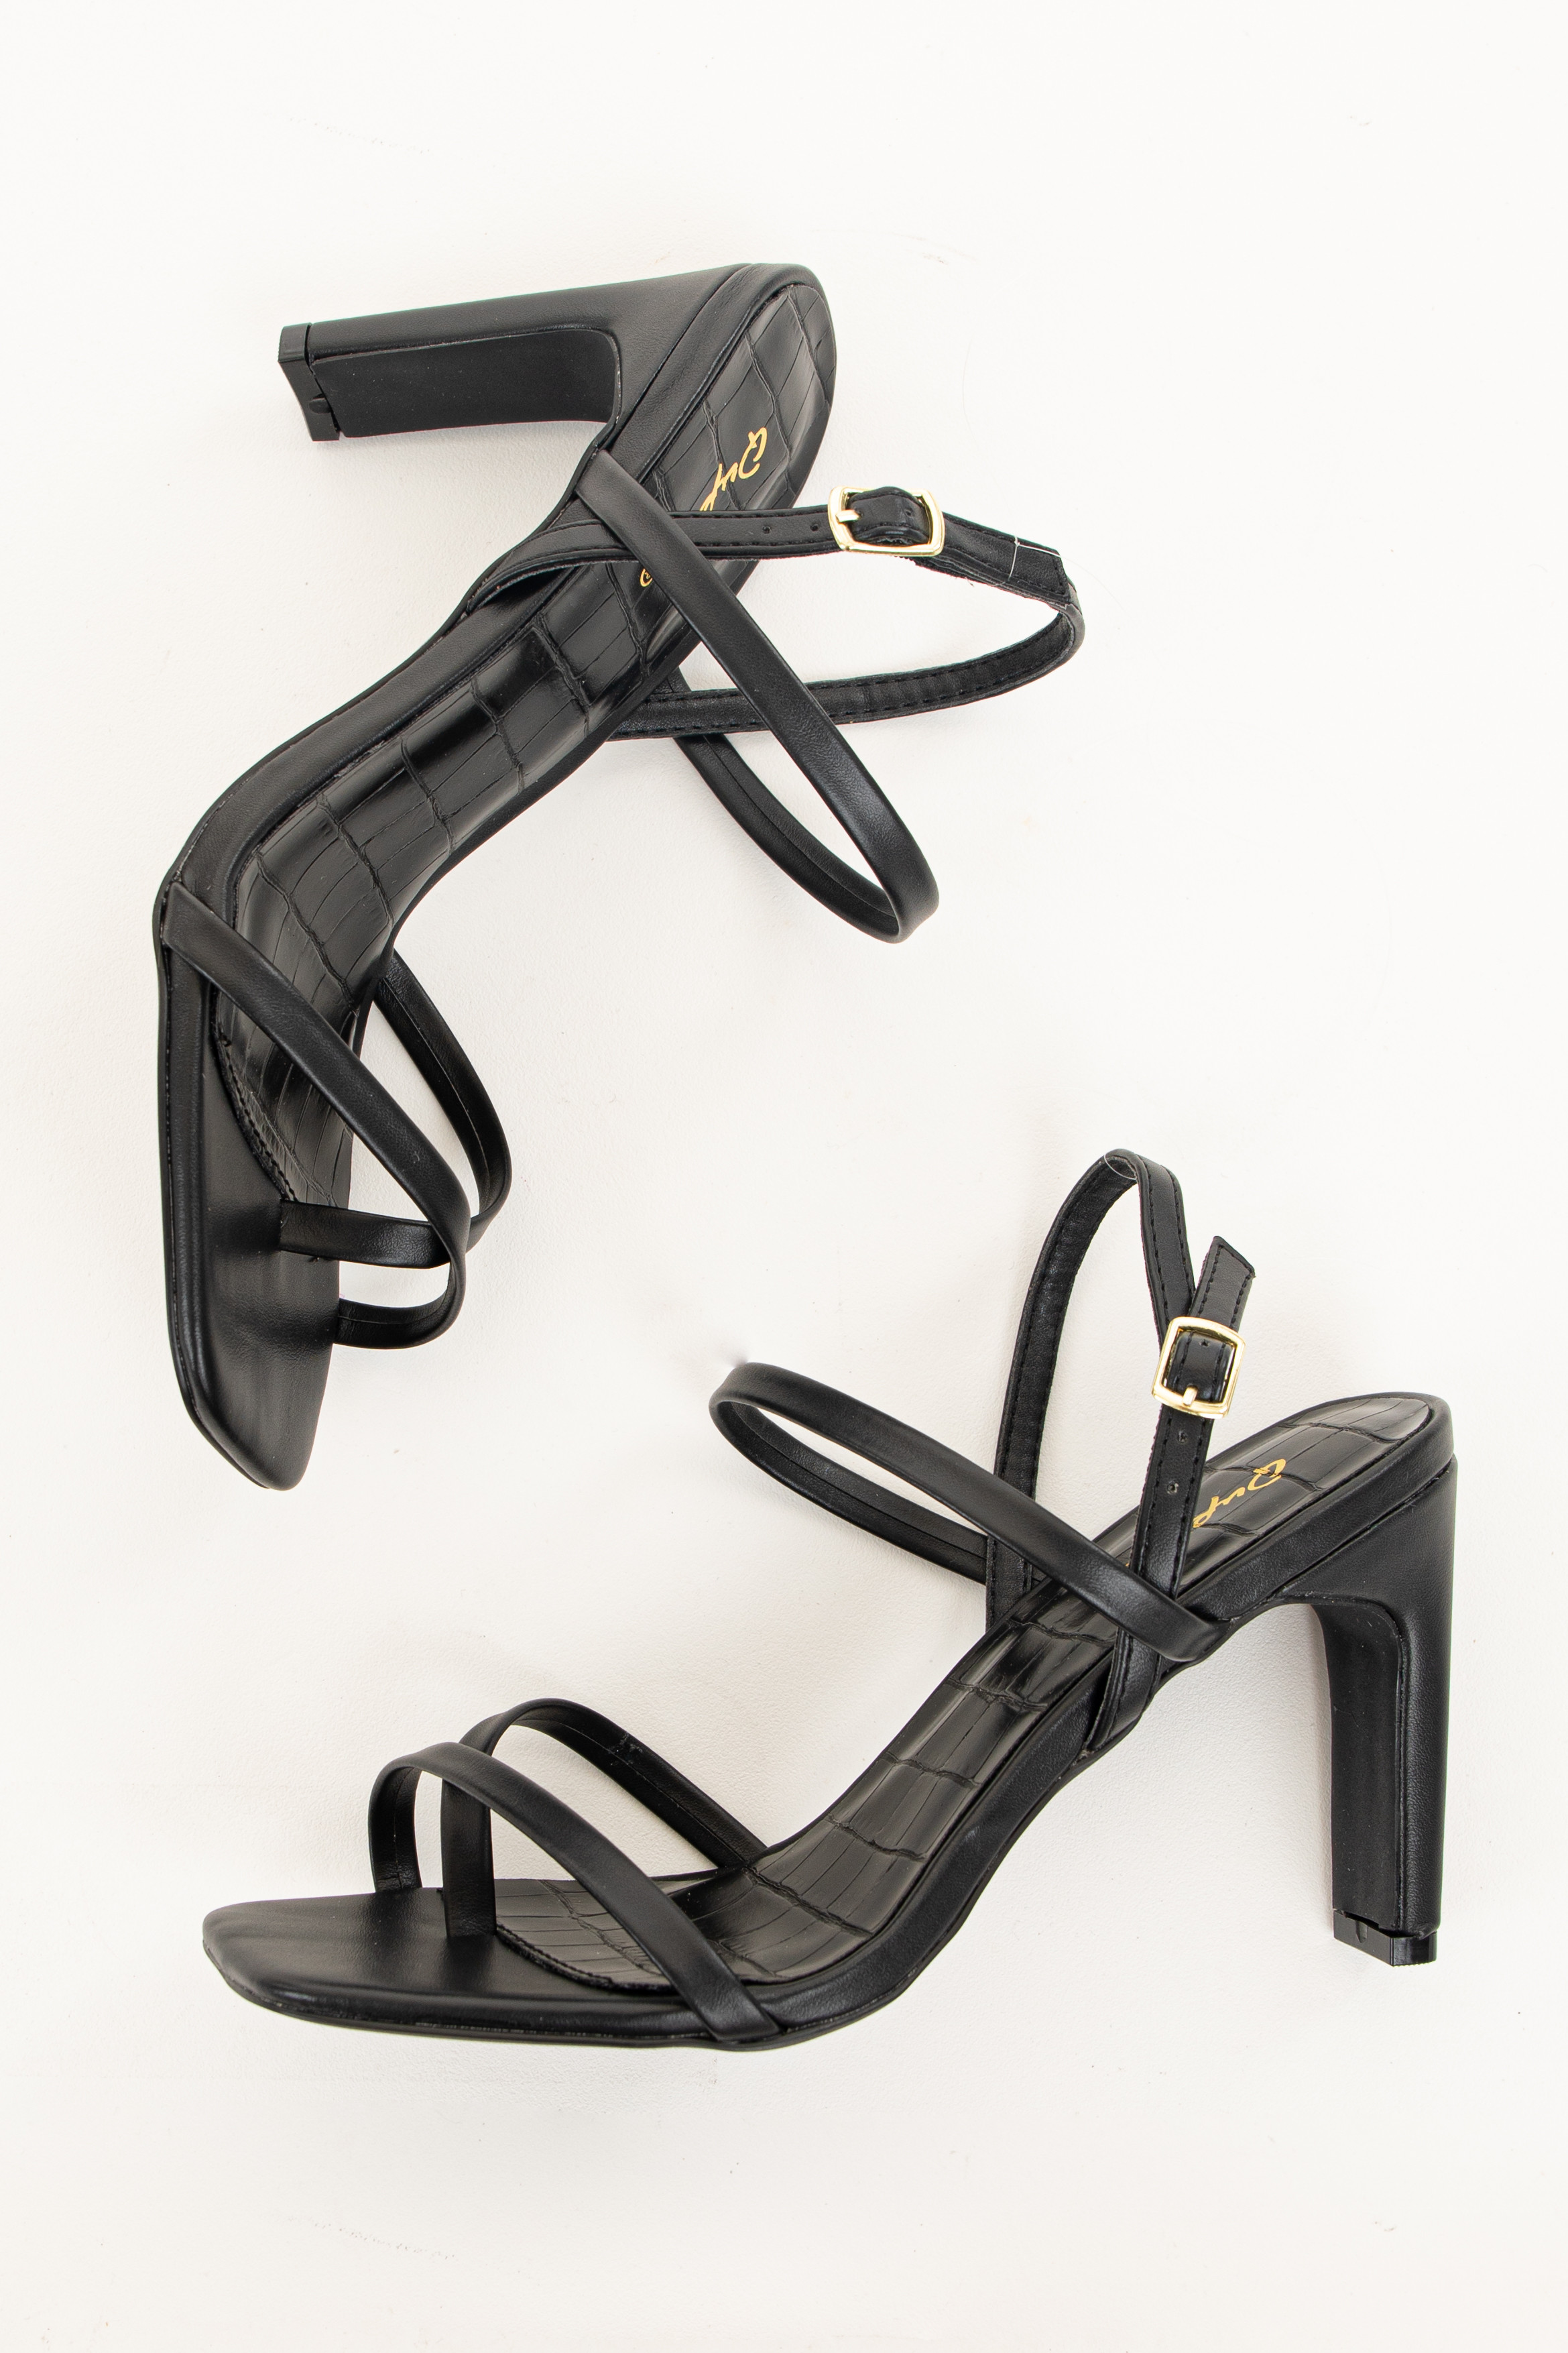 Black Square Toe Buckle Up Strappy High Heel Sandals